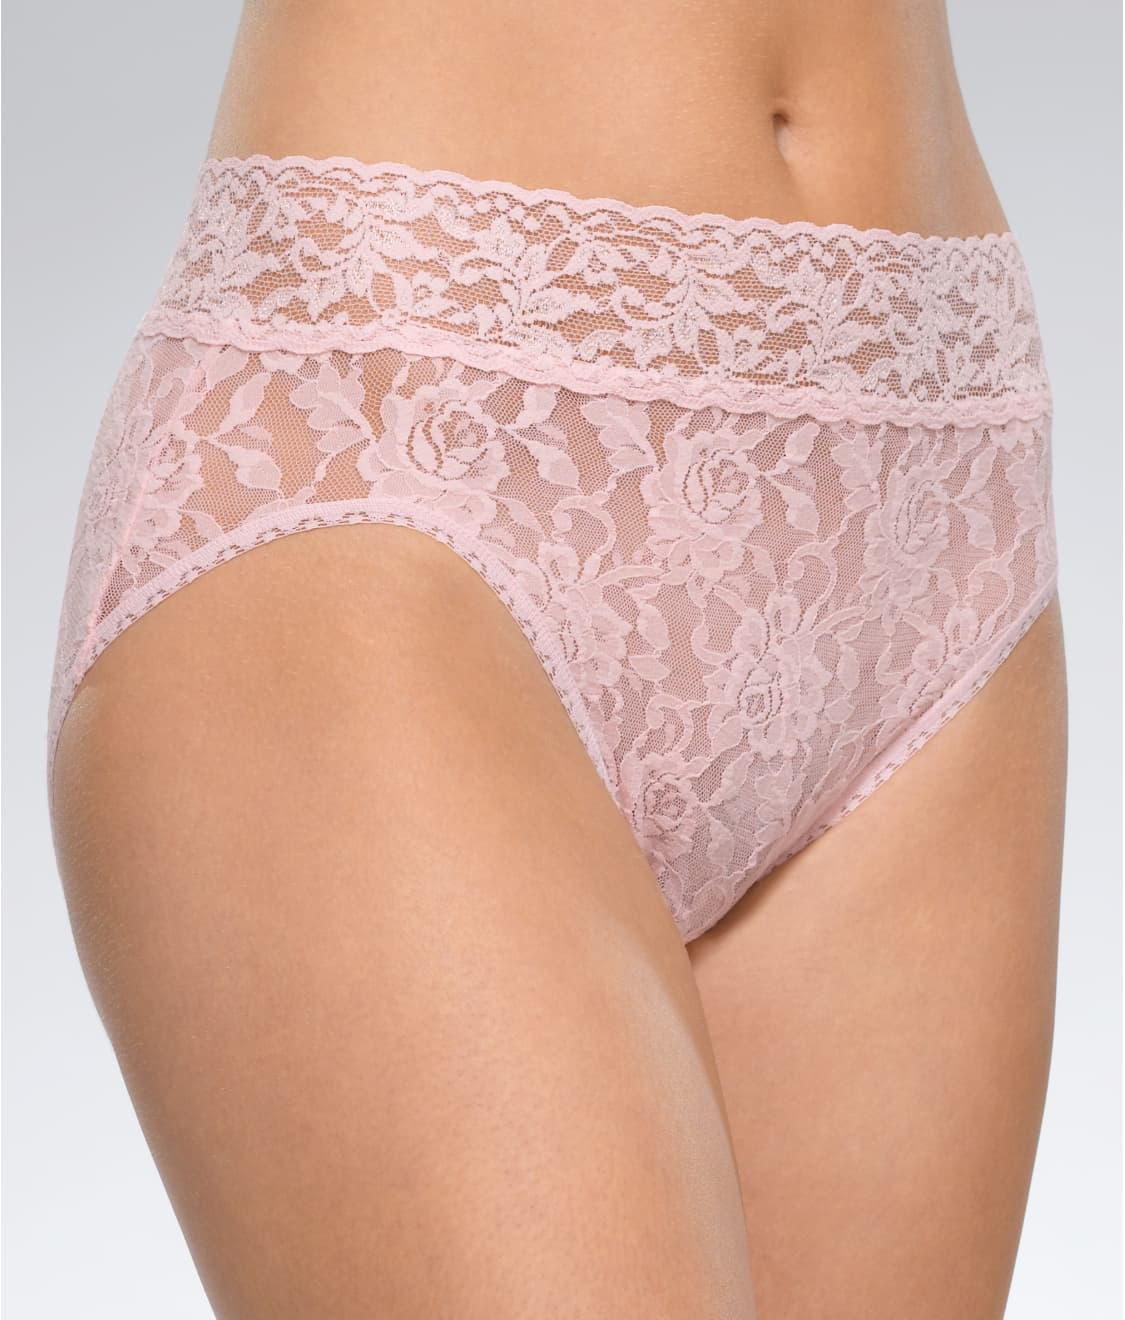 b9b0c81d8cb Hanky Panky Signature Lace French Brief | Bare Necessities (461)